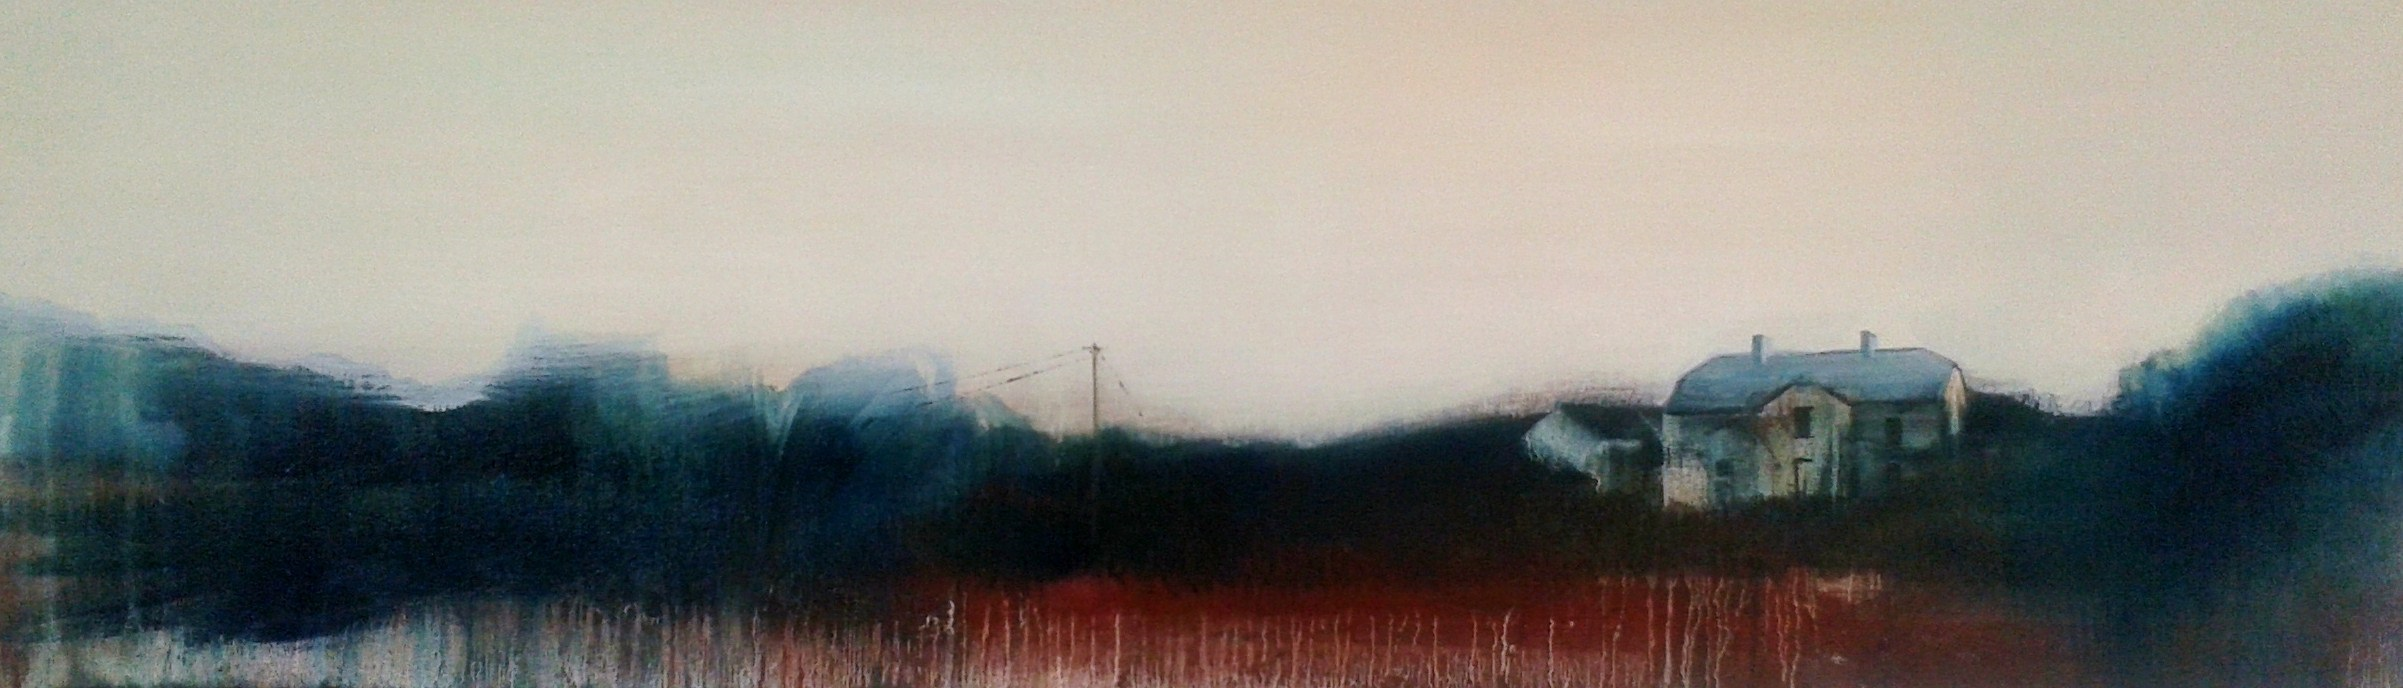 Emma Stroude Elsewhere 30cm x 100cm 2015